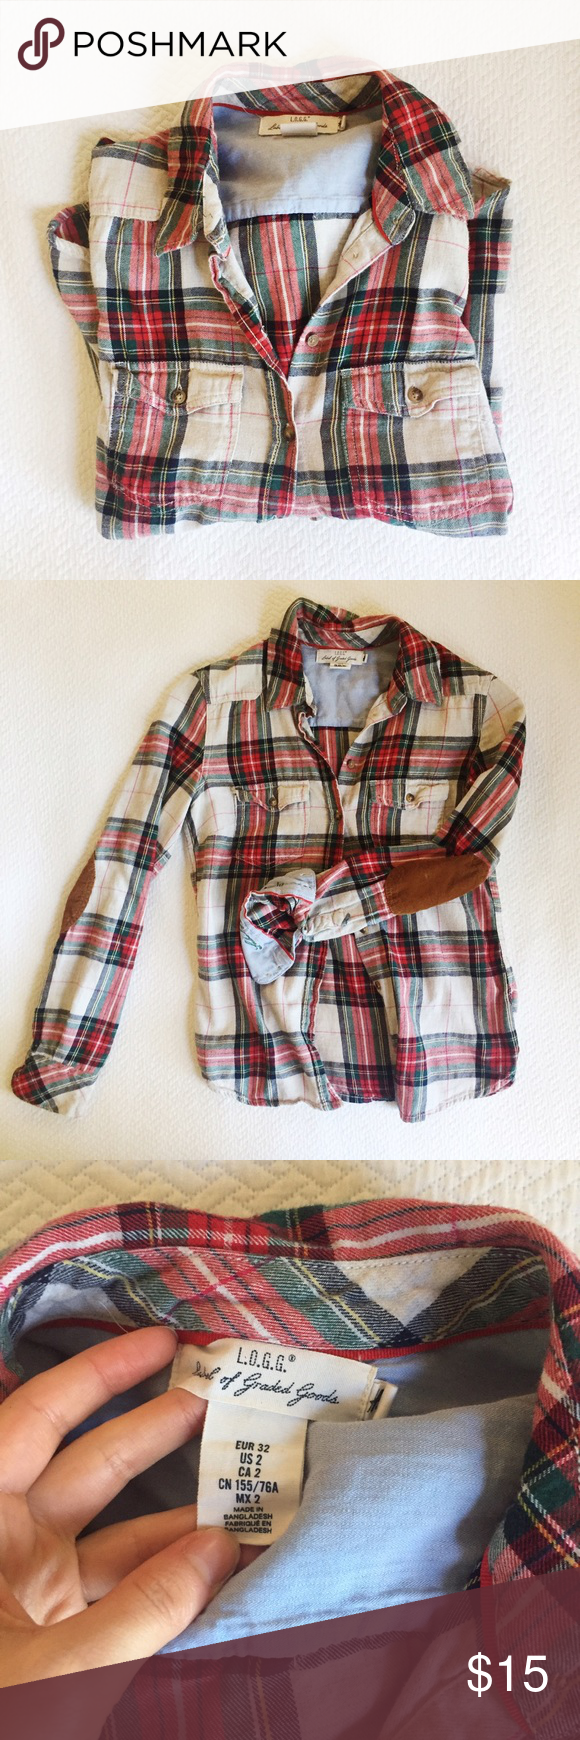 Flannel jacket with elbow patches  HuM Logg Flannel Plaid Red Elbow Patch Button Up